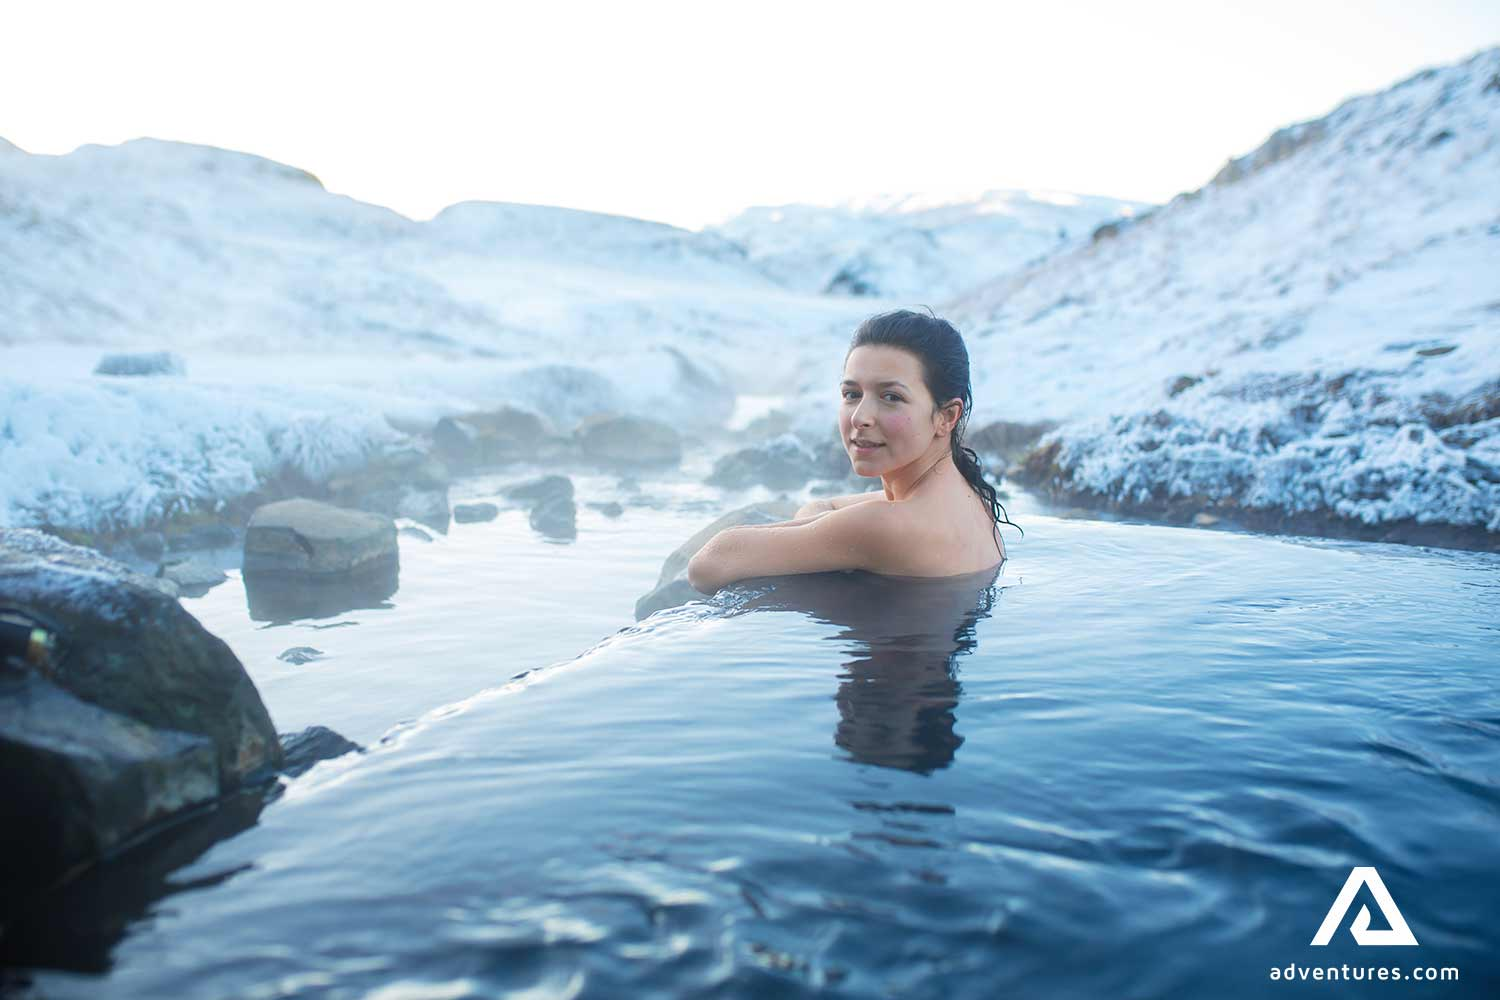 Iceland's natural hot pools remain unspoiled so long as we don't spoil them